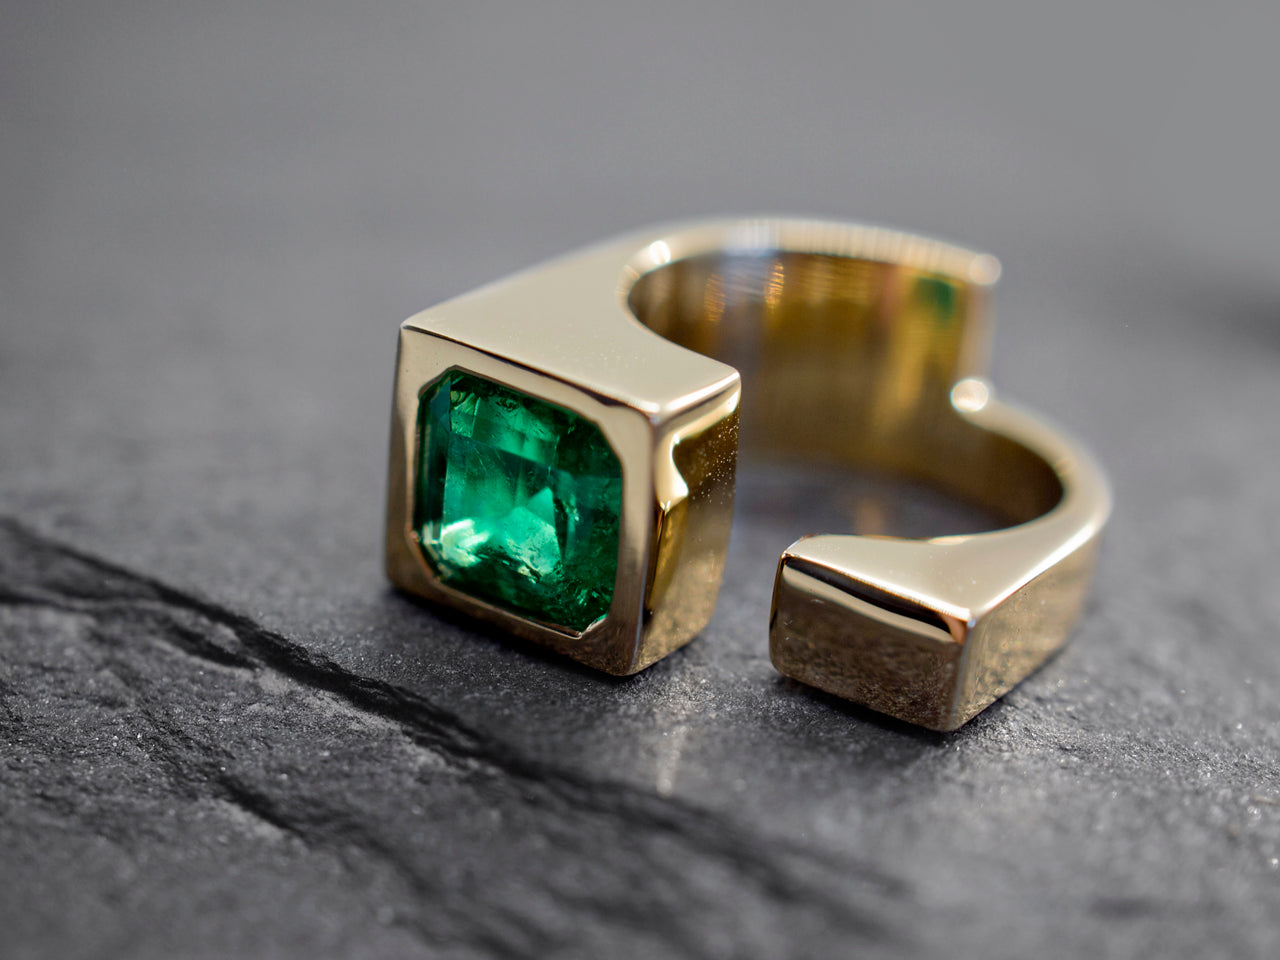 RIFT RING 2.3.GOLD w/ Emerald